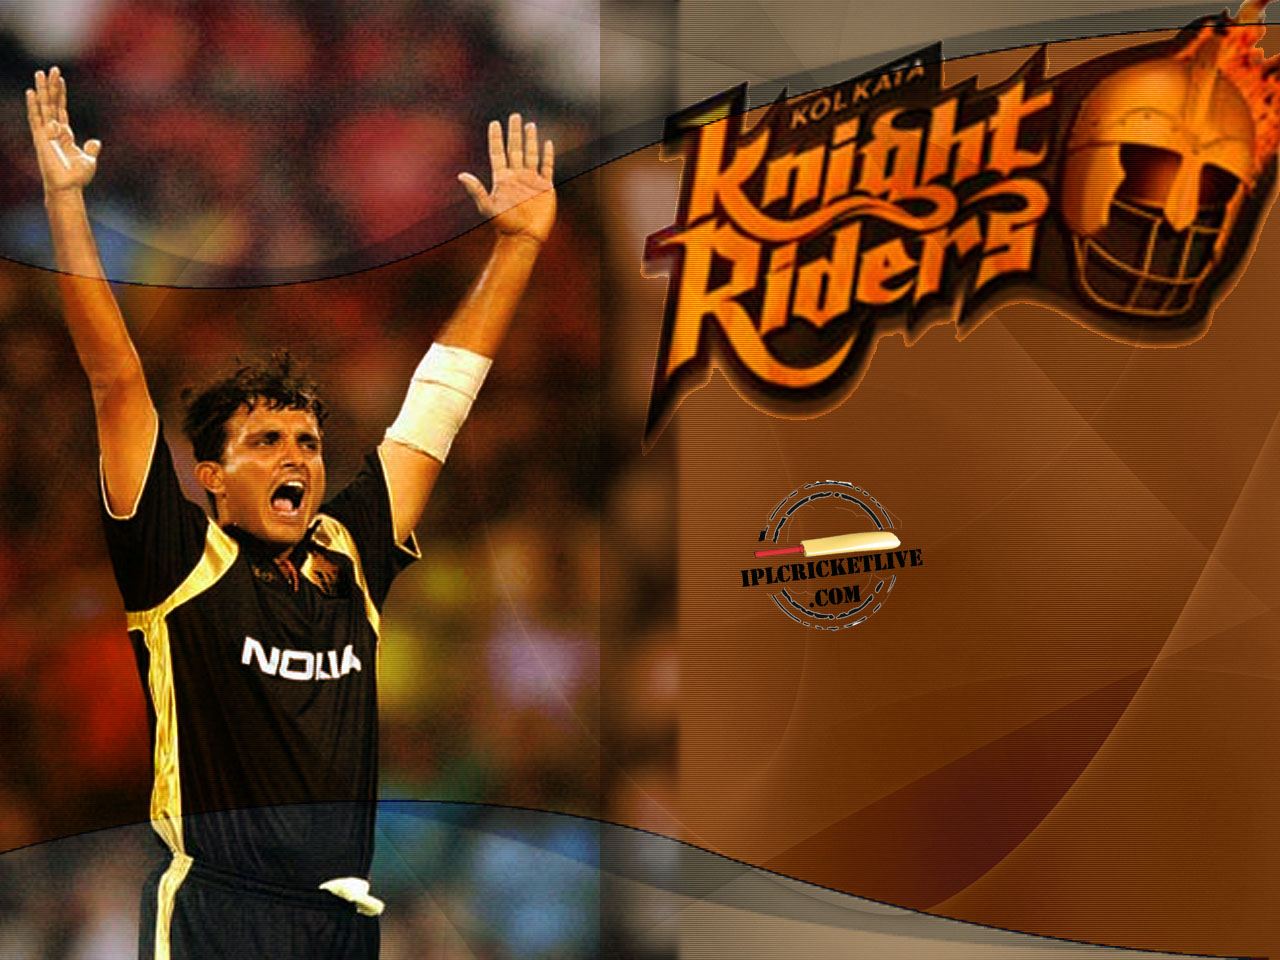 knight riders cricket